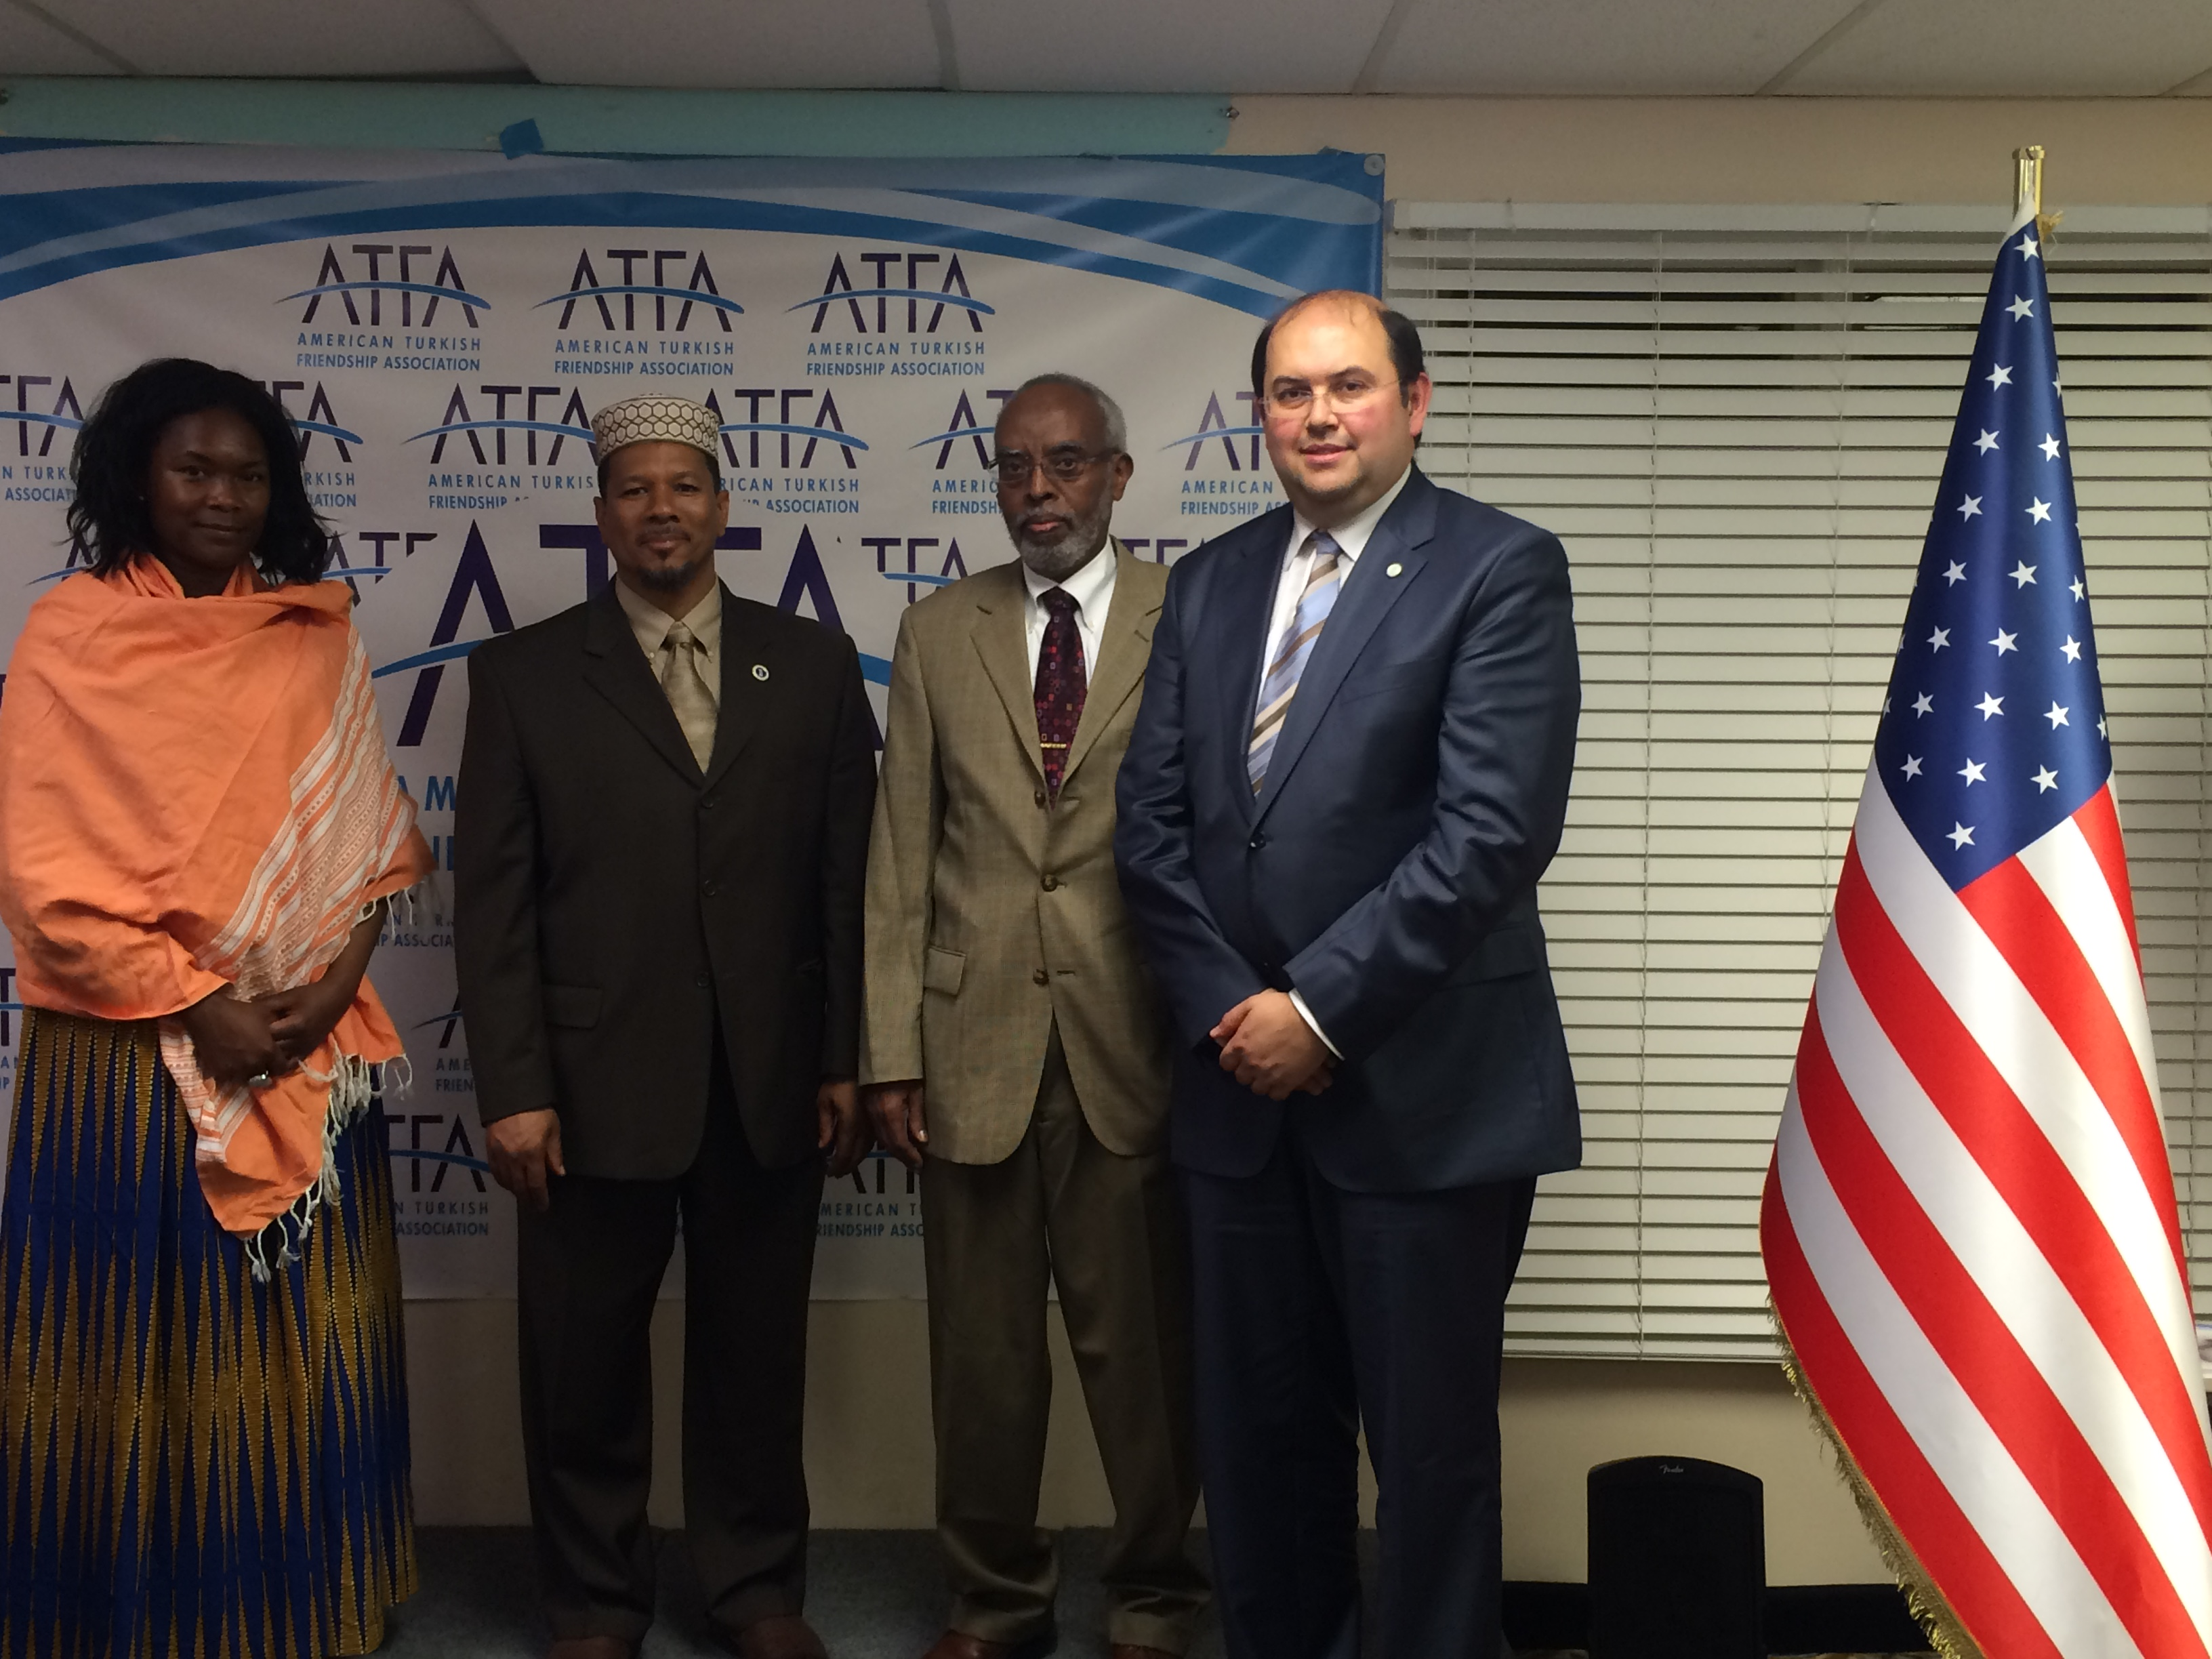 iftar with African-Turkish American Communities #friendship #dialogue